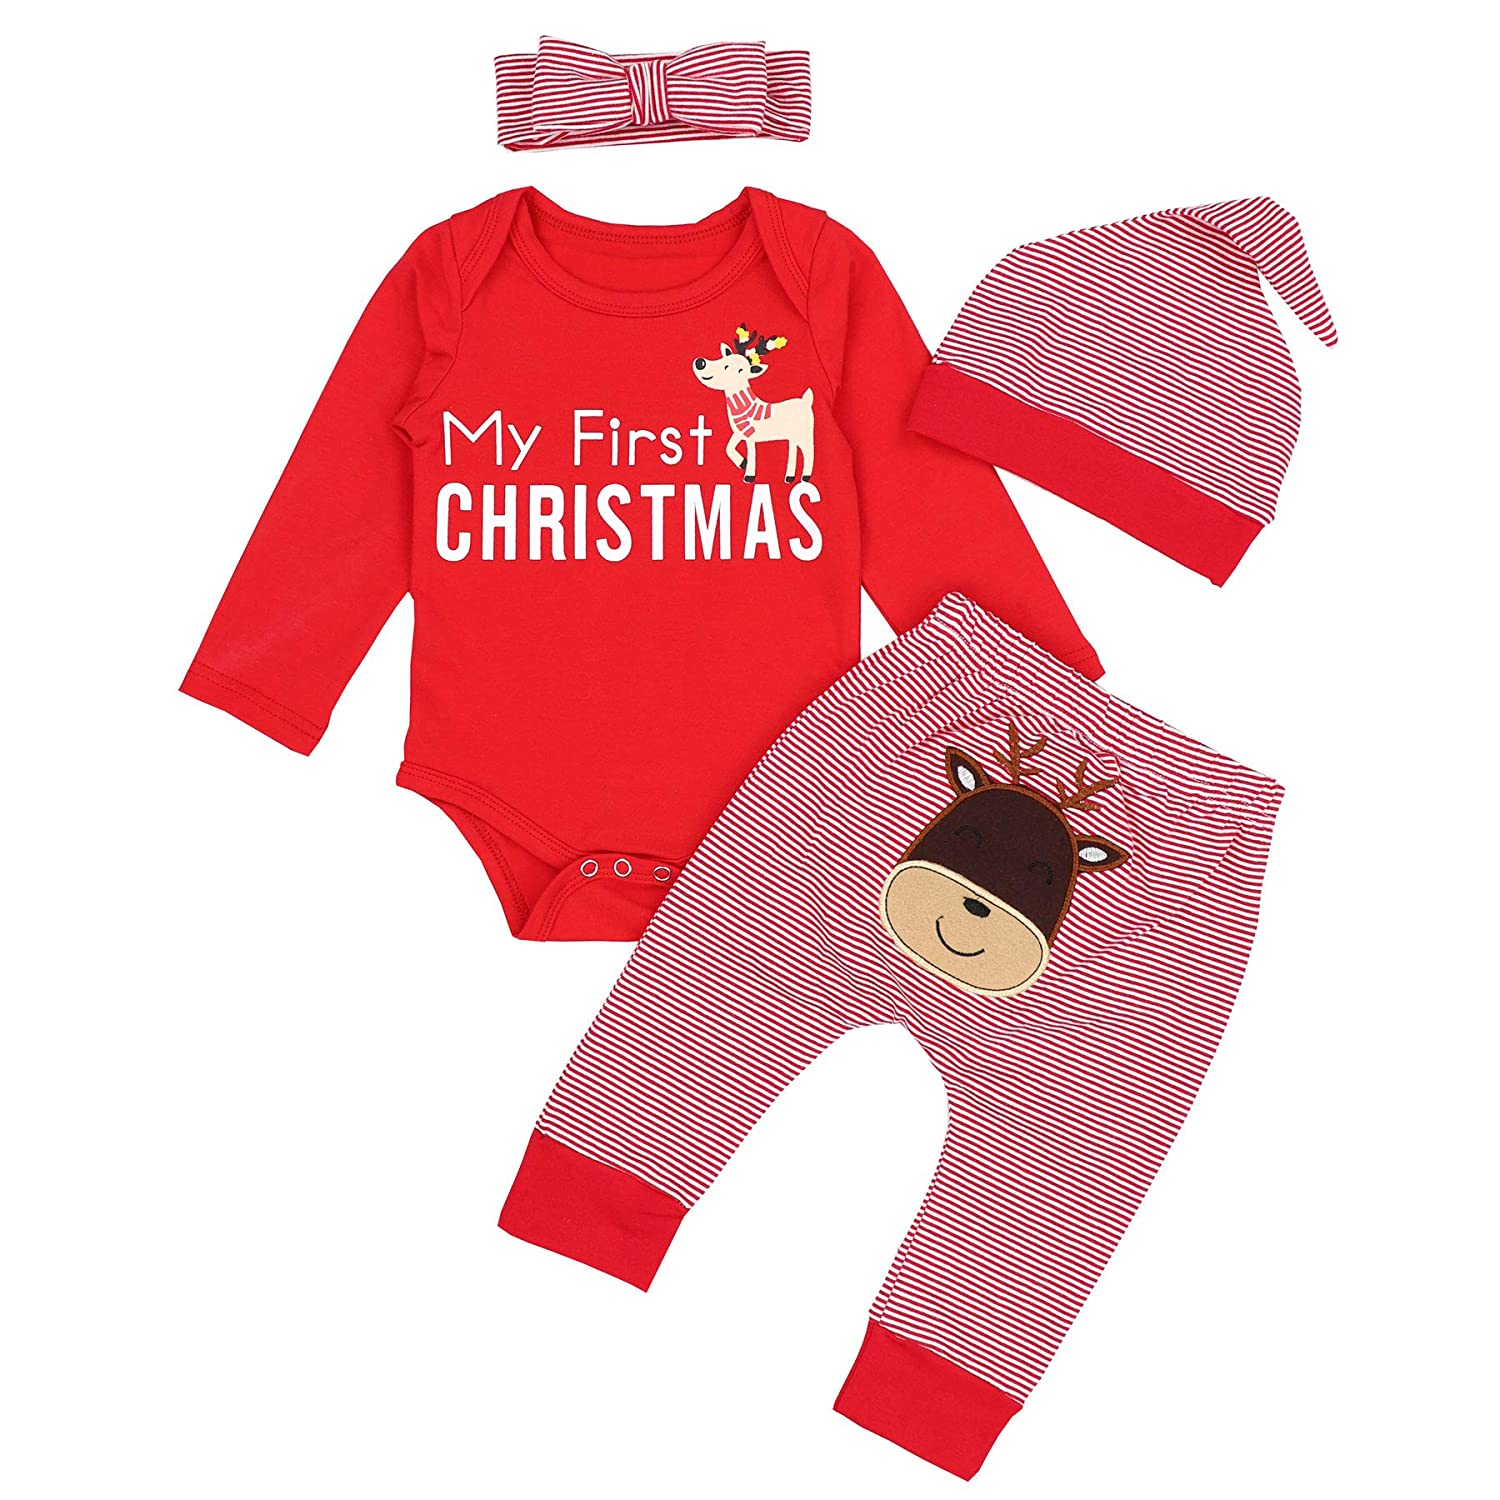 e20f70bce Amazon.com: KANGKANG Christmas Outfits Baby Girls Boys My First Christmas  Rompers Bodysuit Deer Pants with Christmas Hat: Clothing